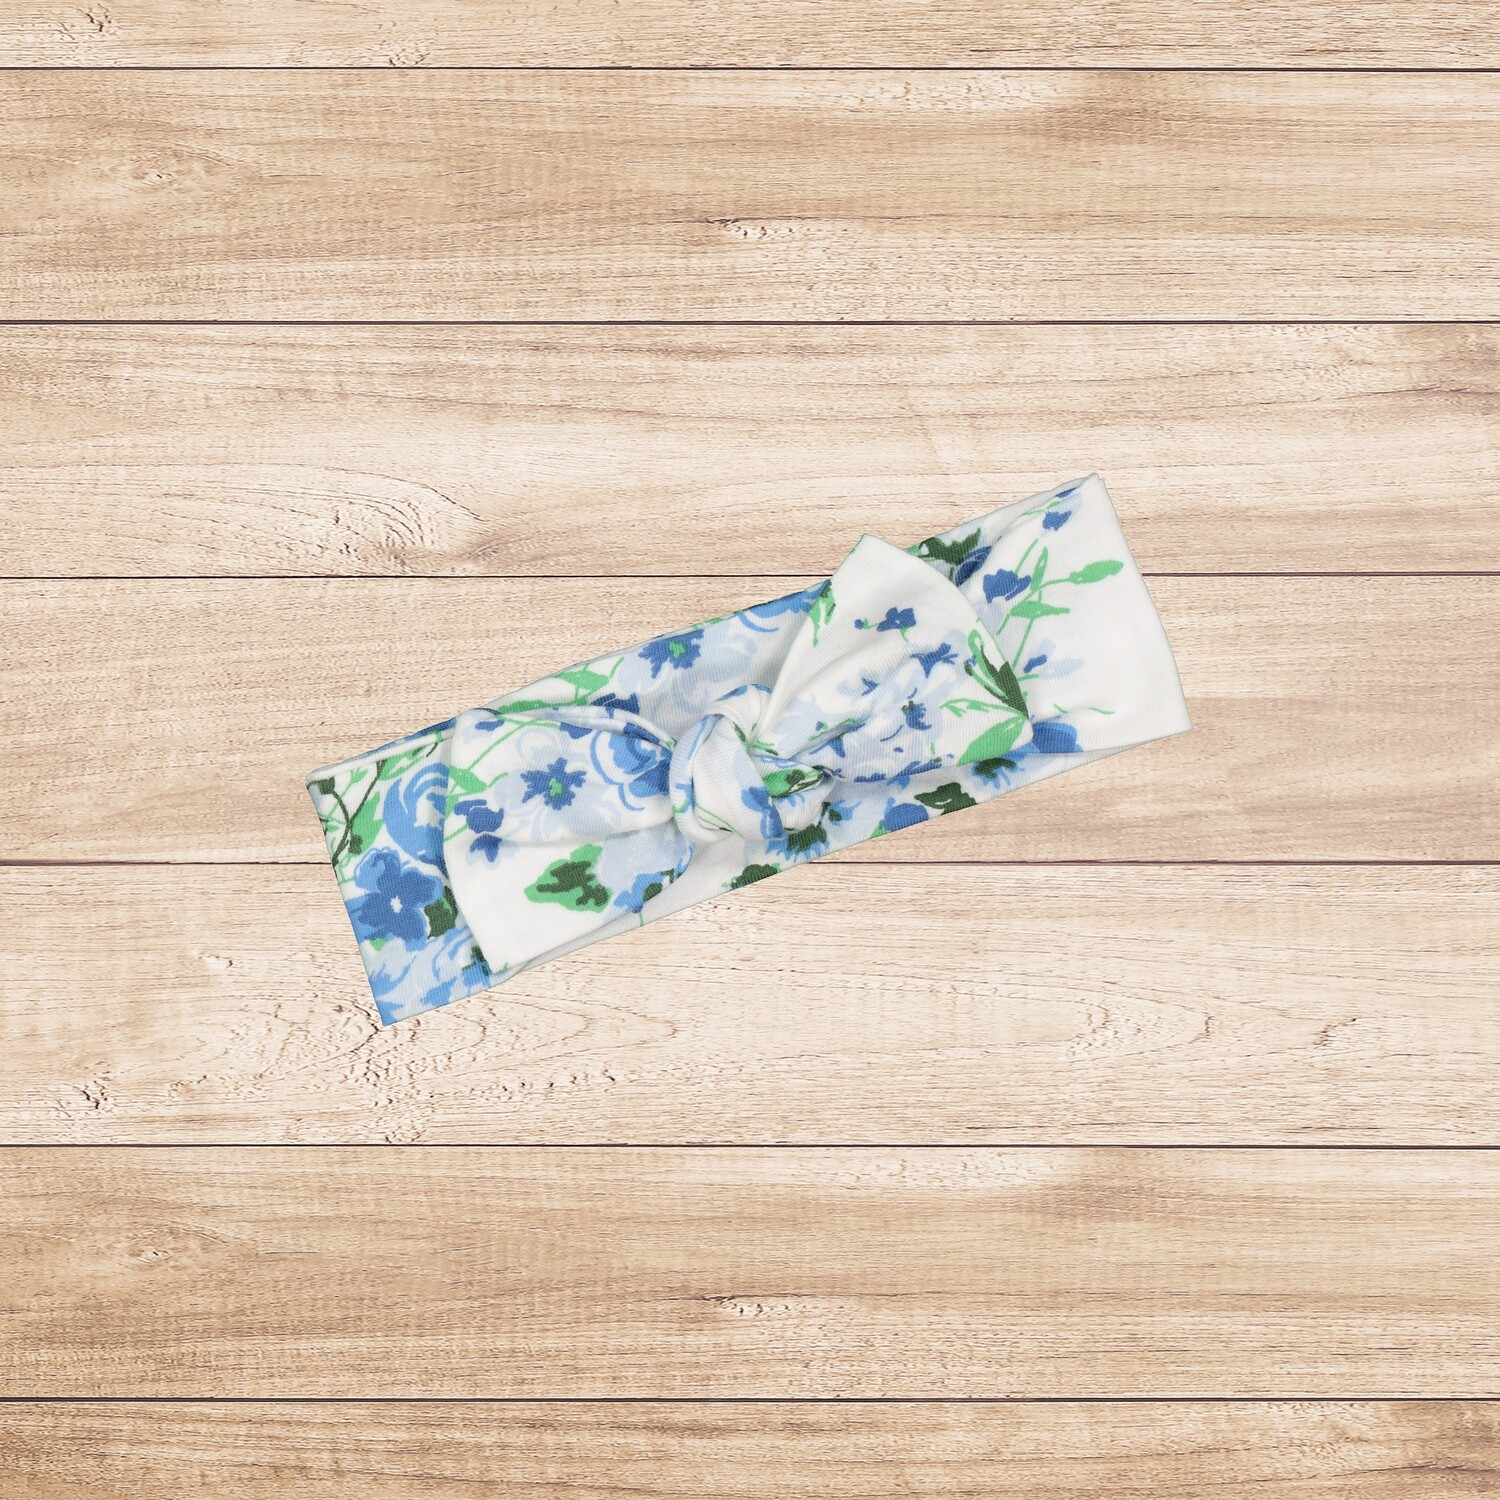 Headband Tie Up White and Blue Floral